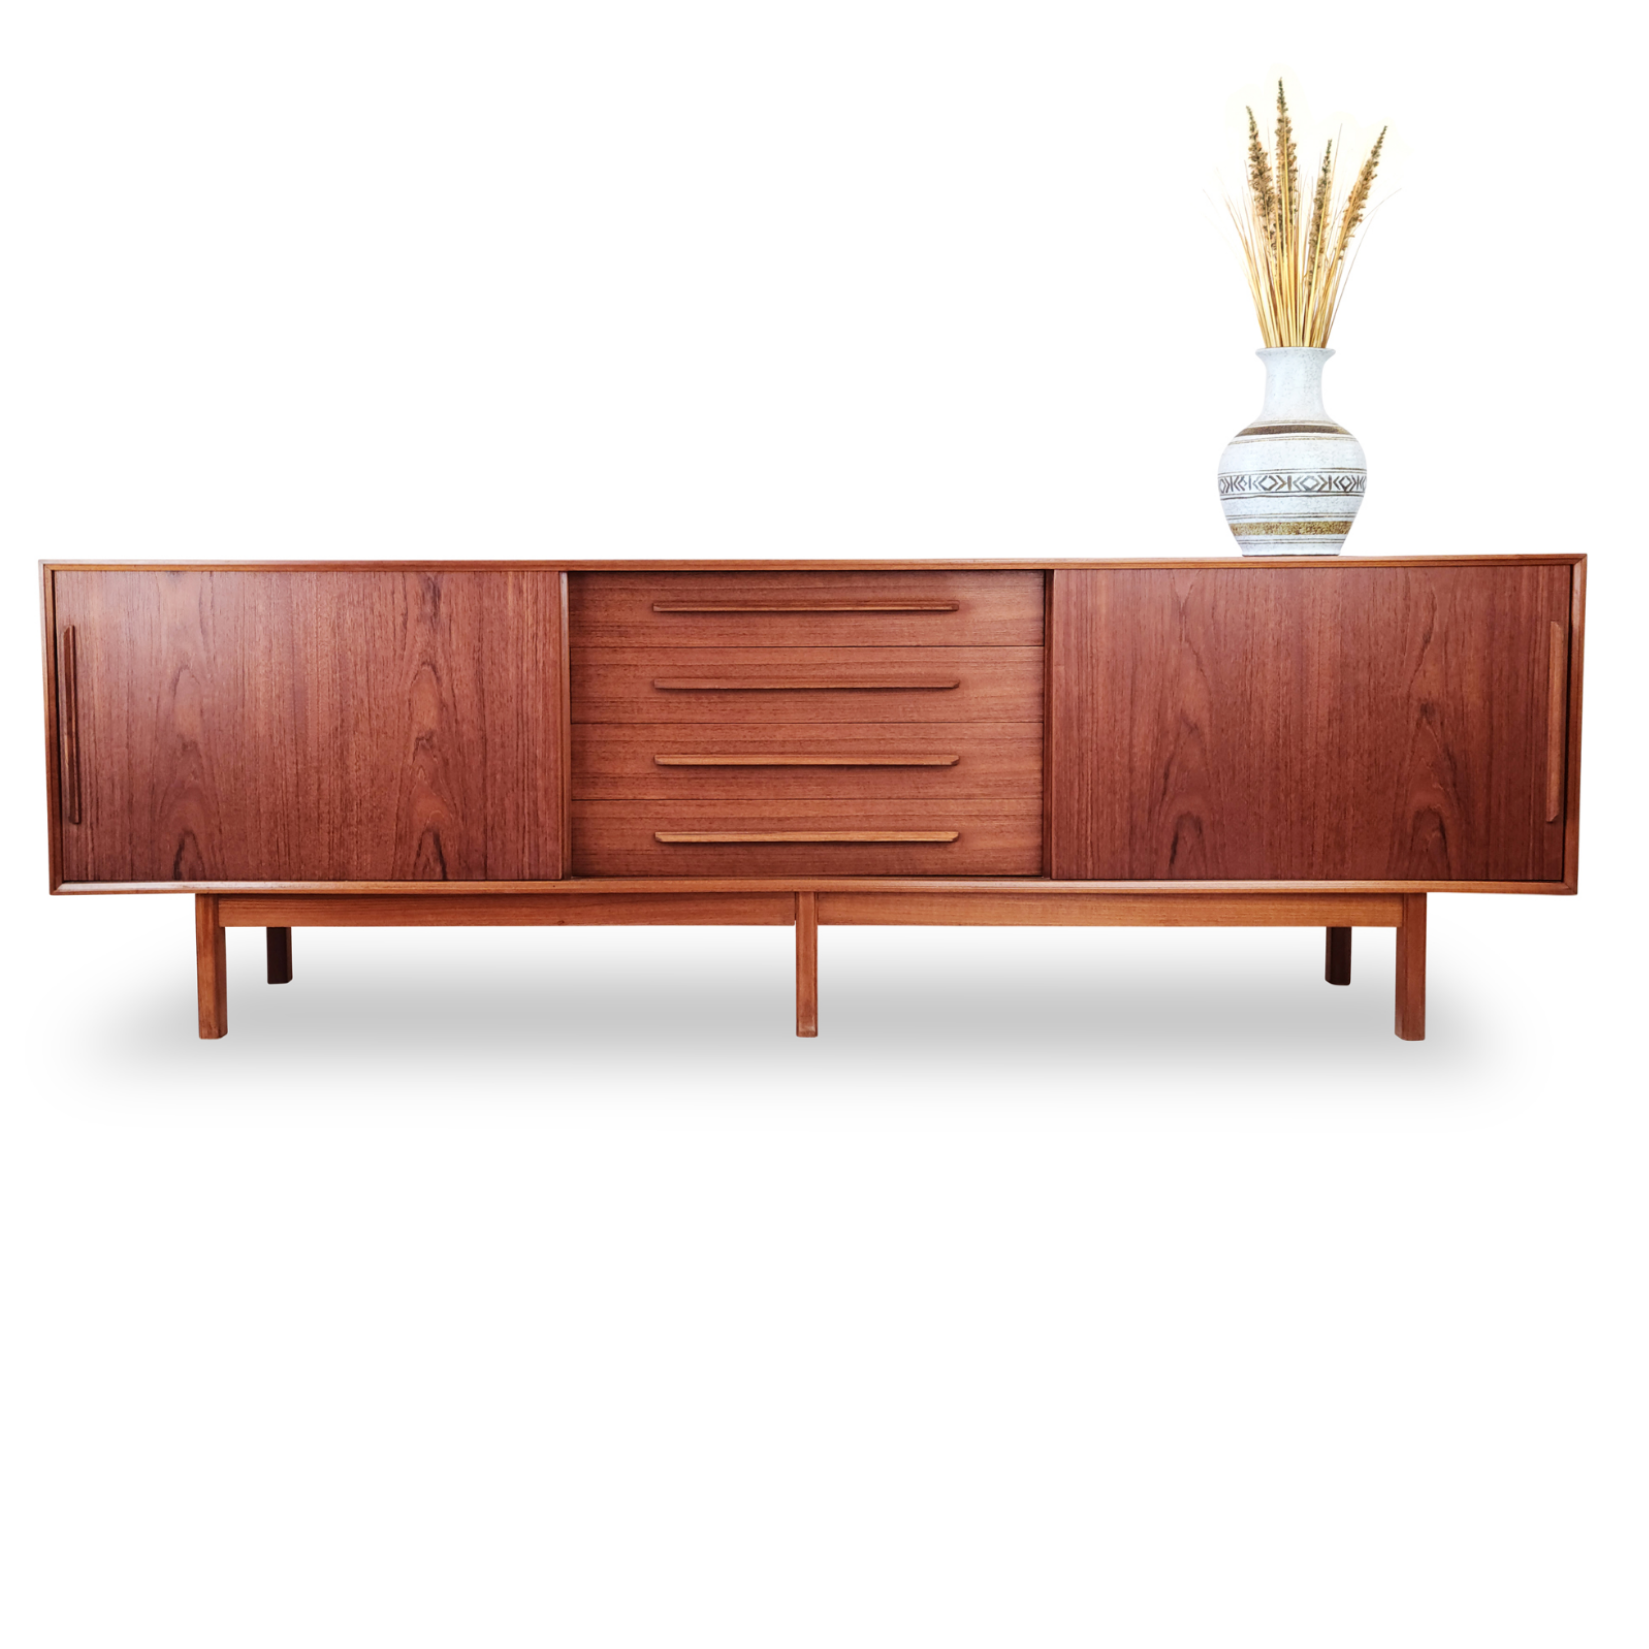 Teak XL six legged Sideboard from the Netherlands